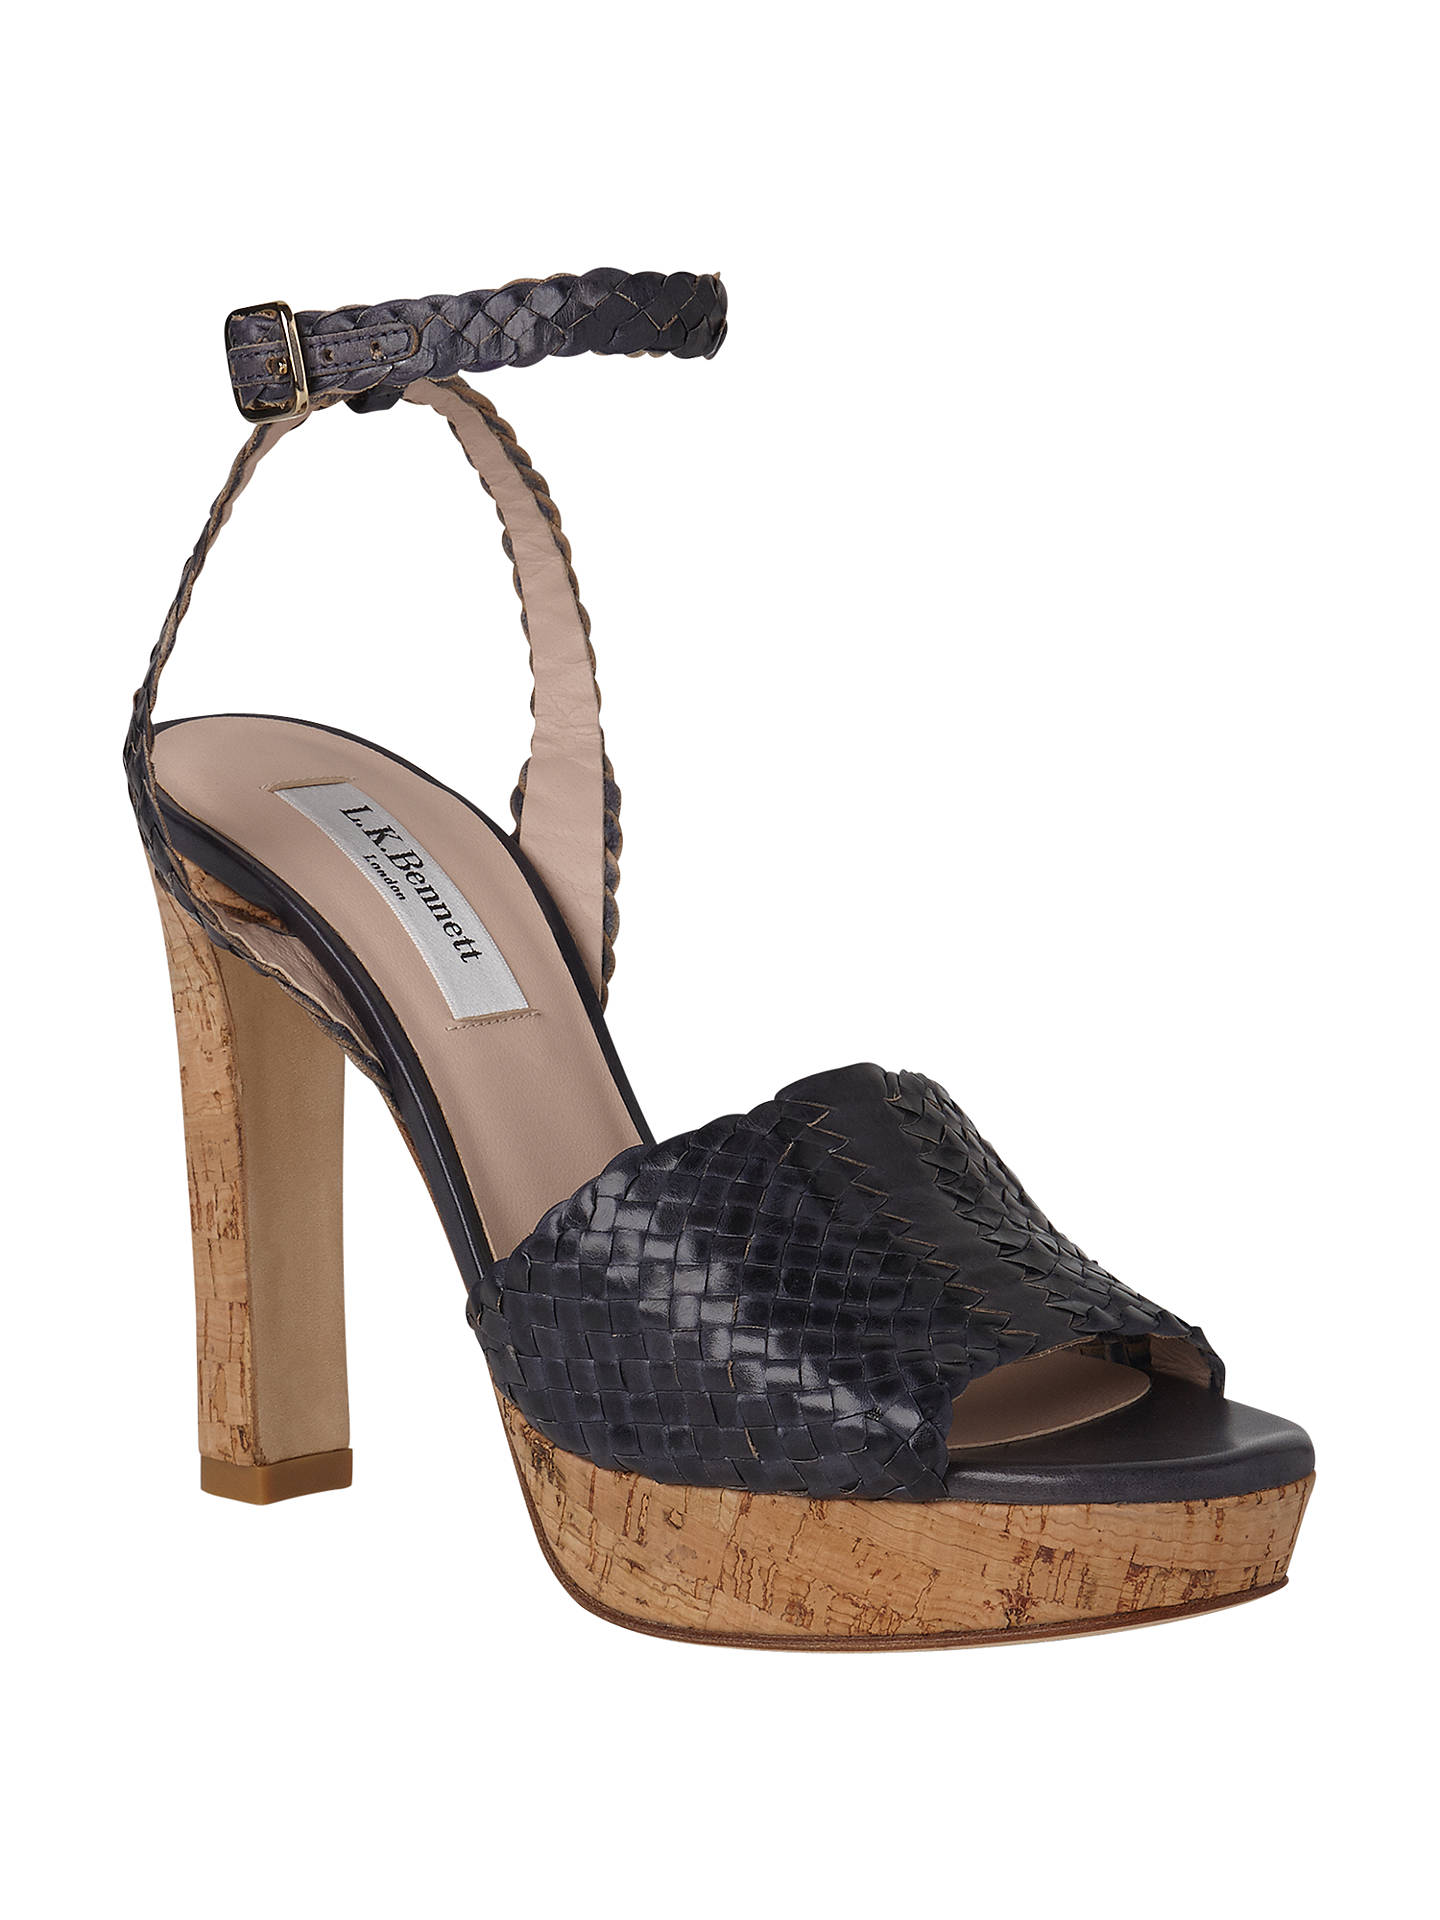 3e68c8226 L.K. Bennett Margot Block Heeled Sandals at John Lewis   Partners